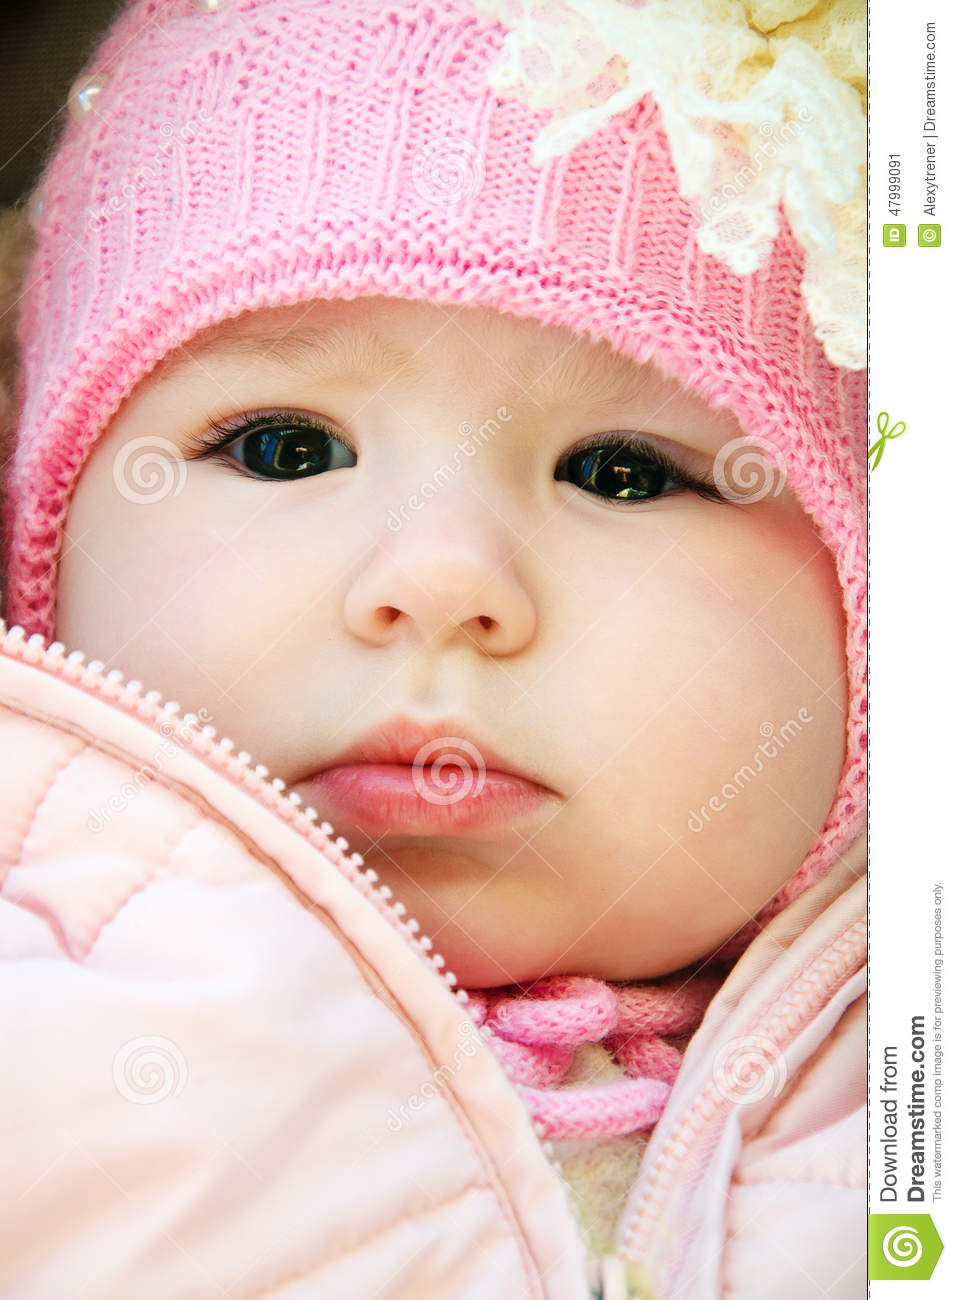 portrait of cute baby with big beautiful eyes stock image - image of